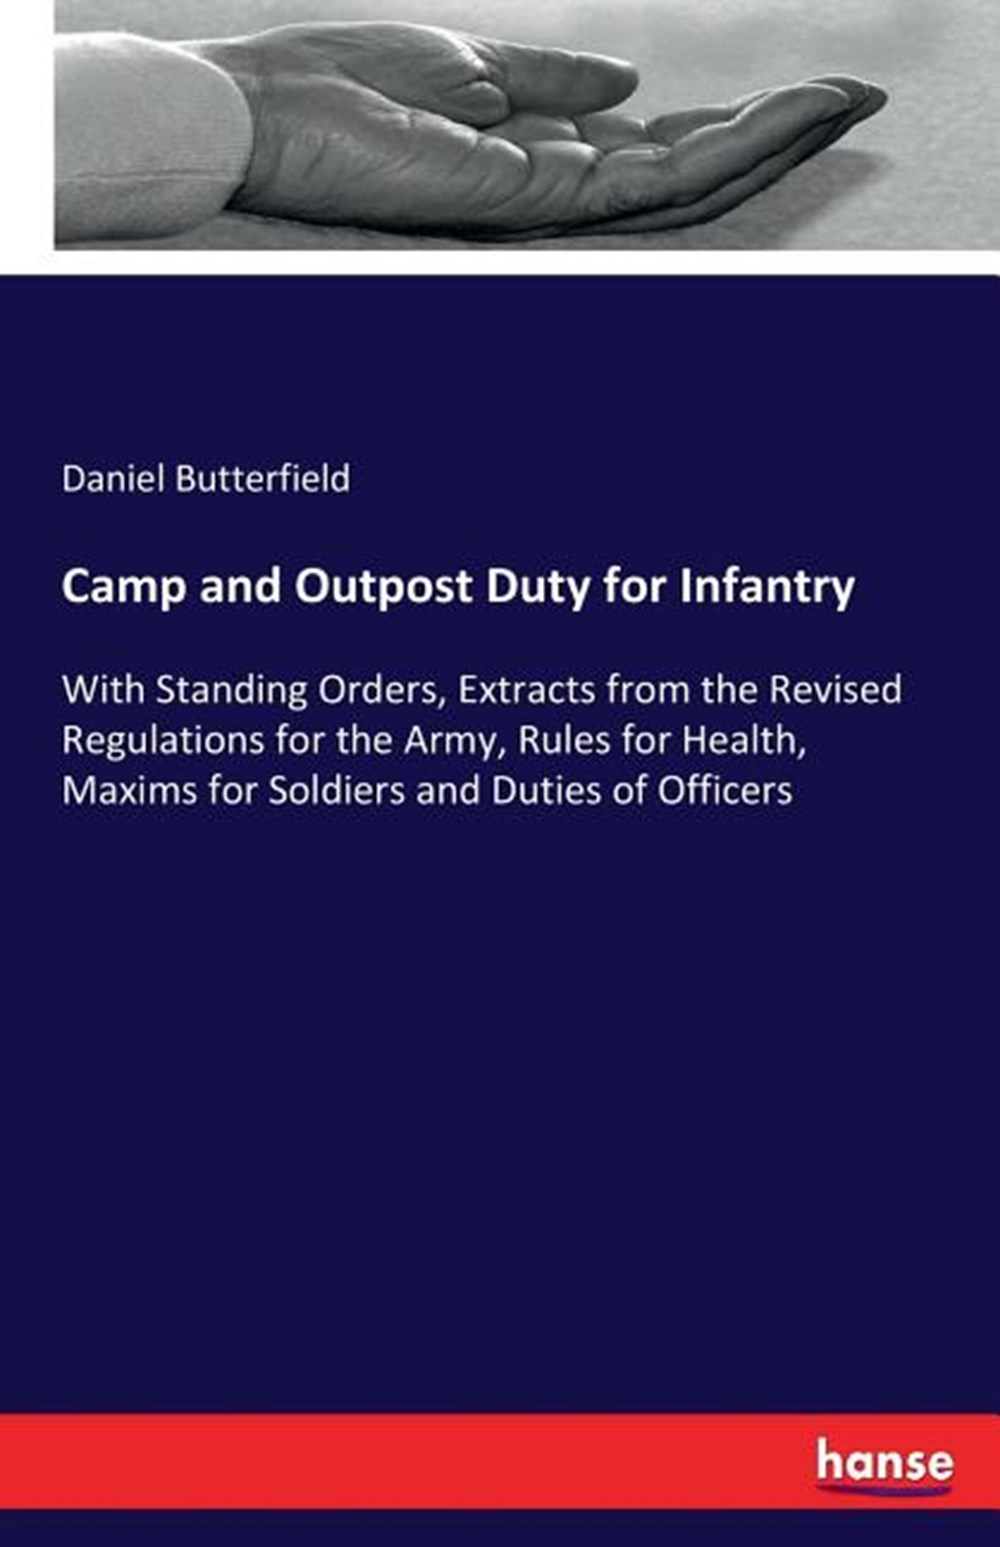 Camp and Outpost Duty for Infantry With Standing Orders, Extracts from the Revised Regulations for t